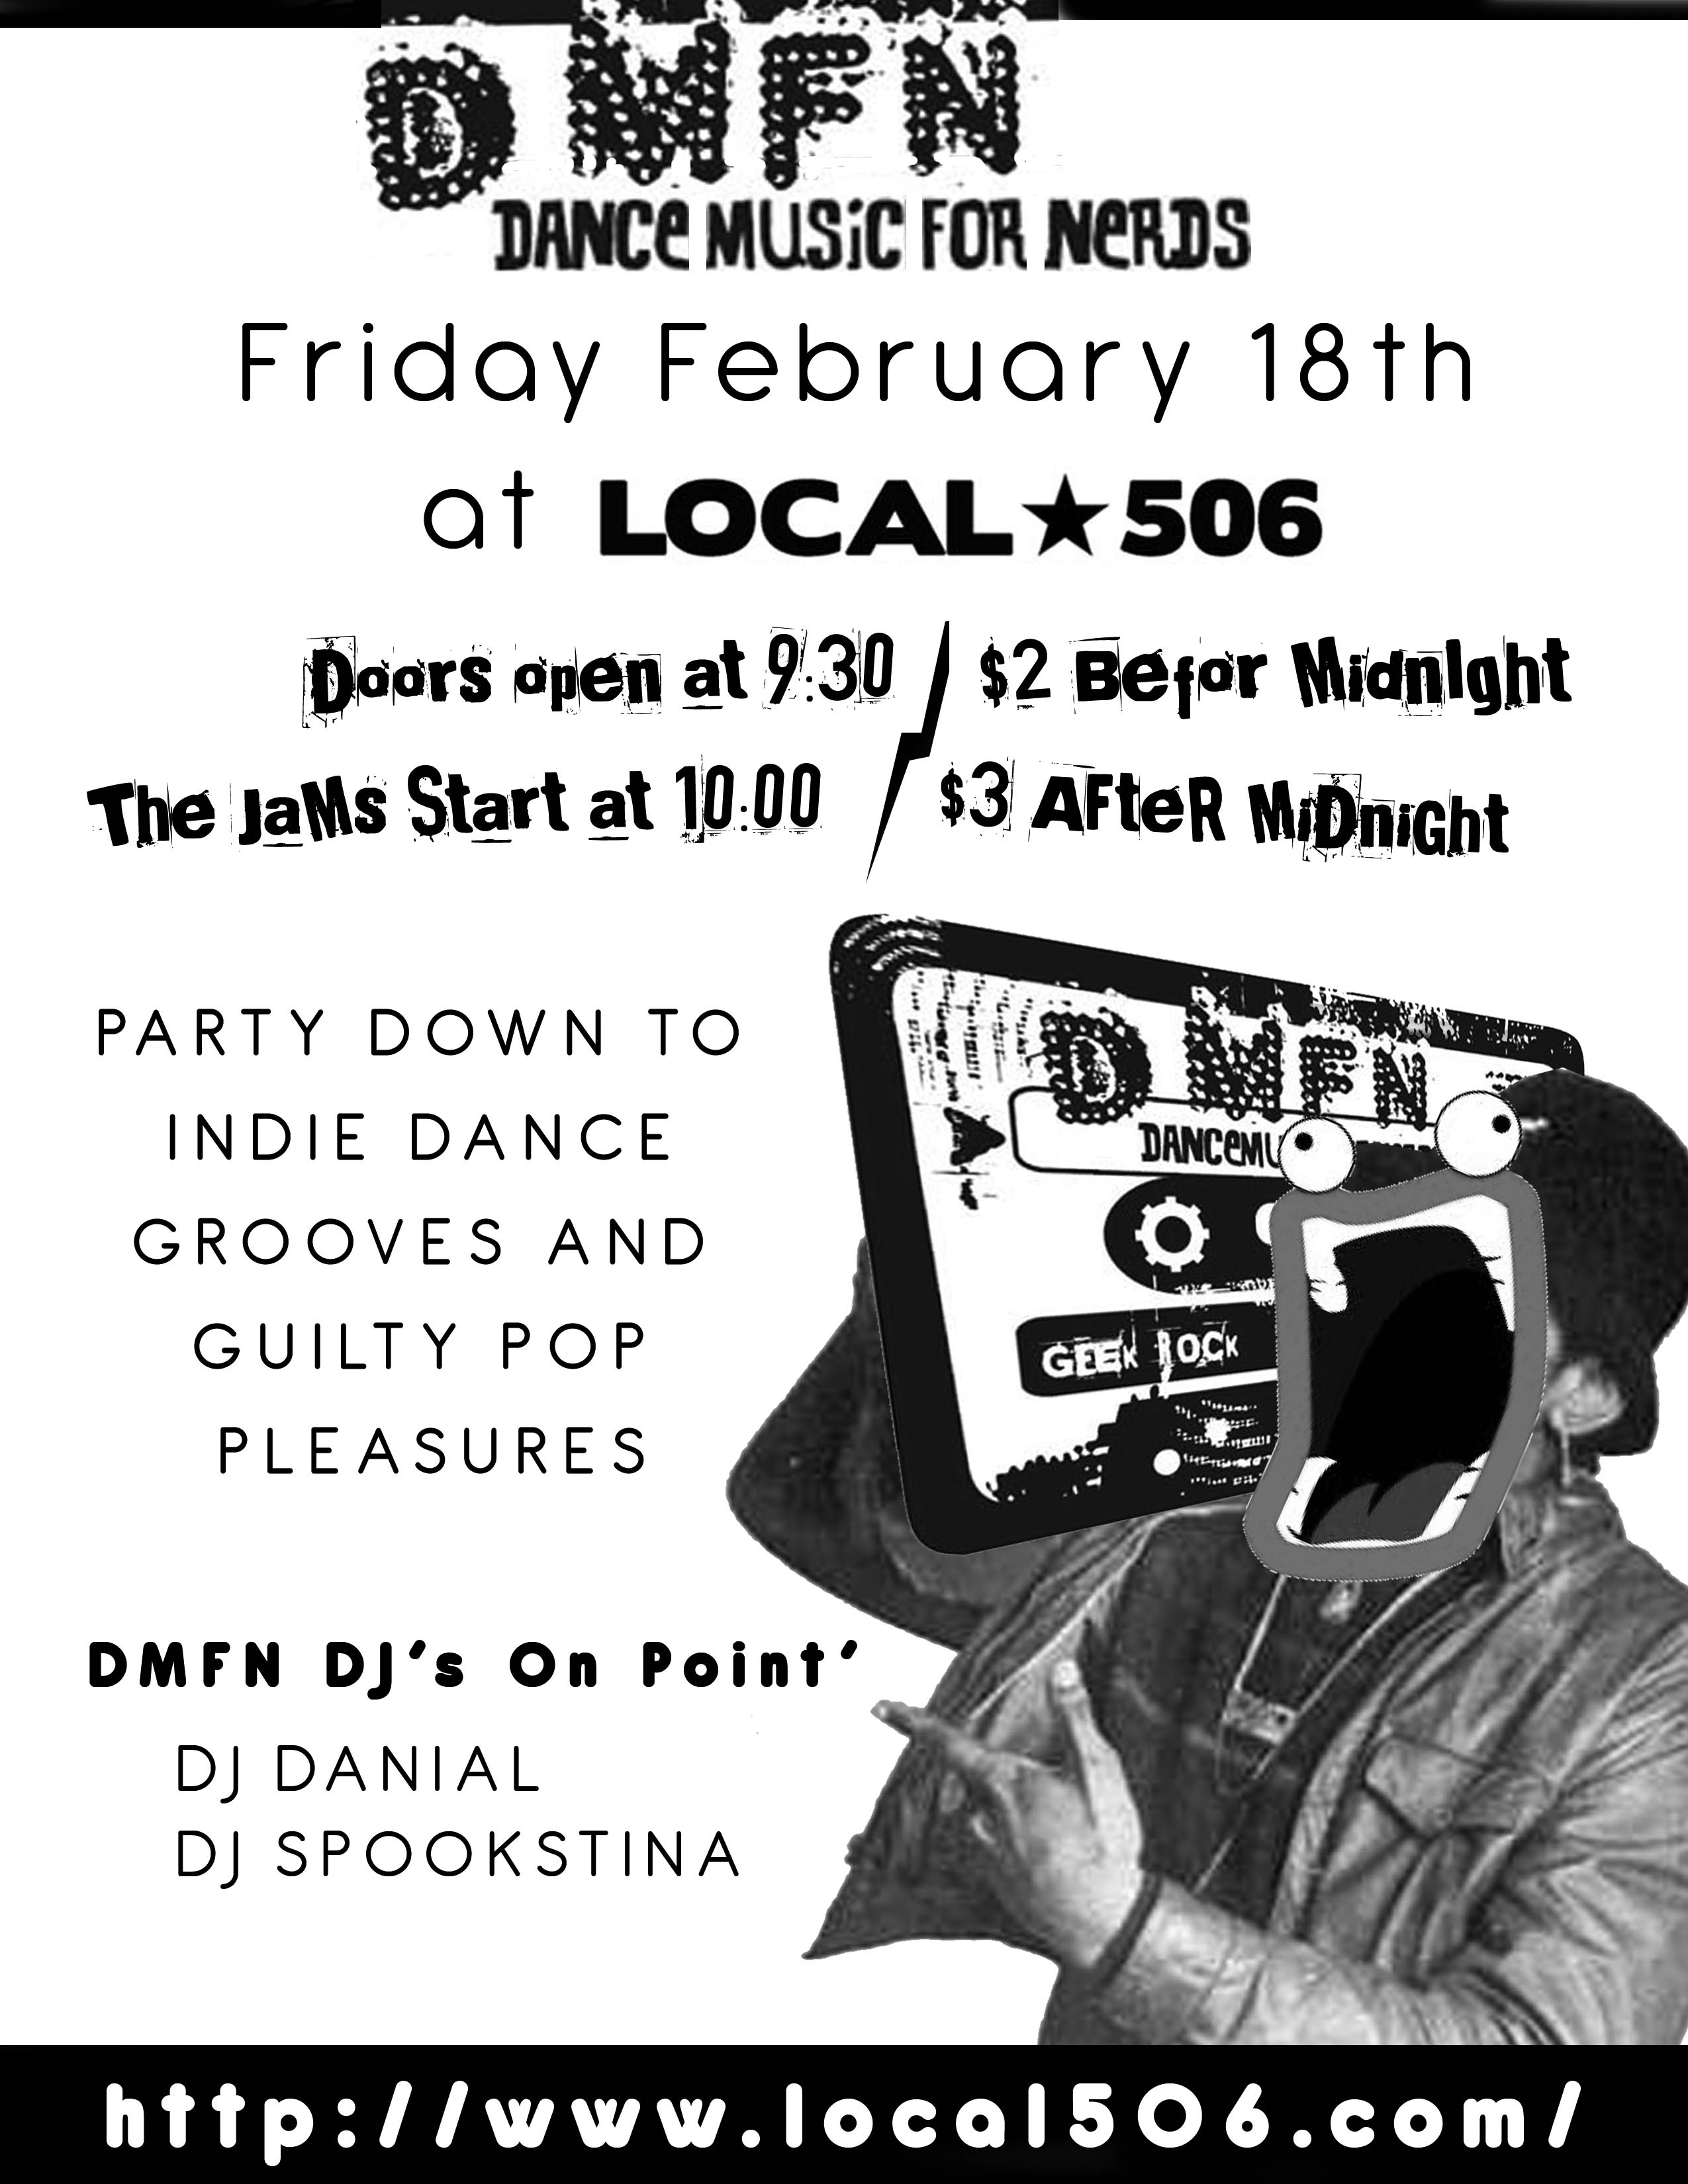 Friday night @ Local 506 Doors open @ 9:30 Cheap! $2 before midnight/$3 after